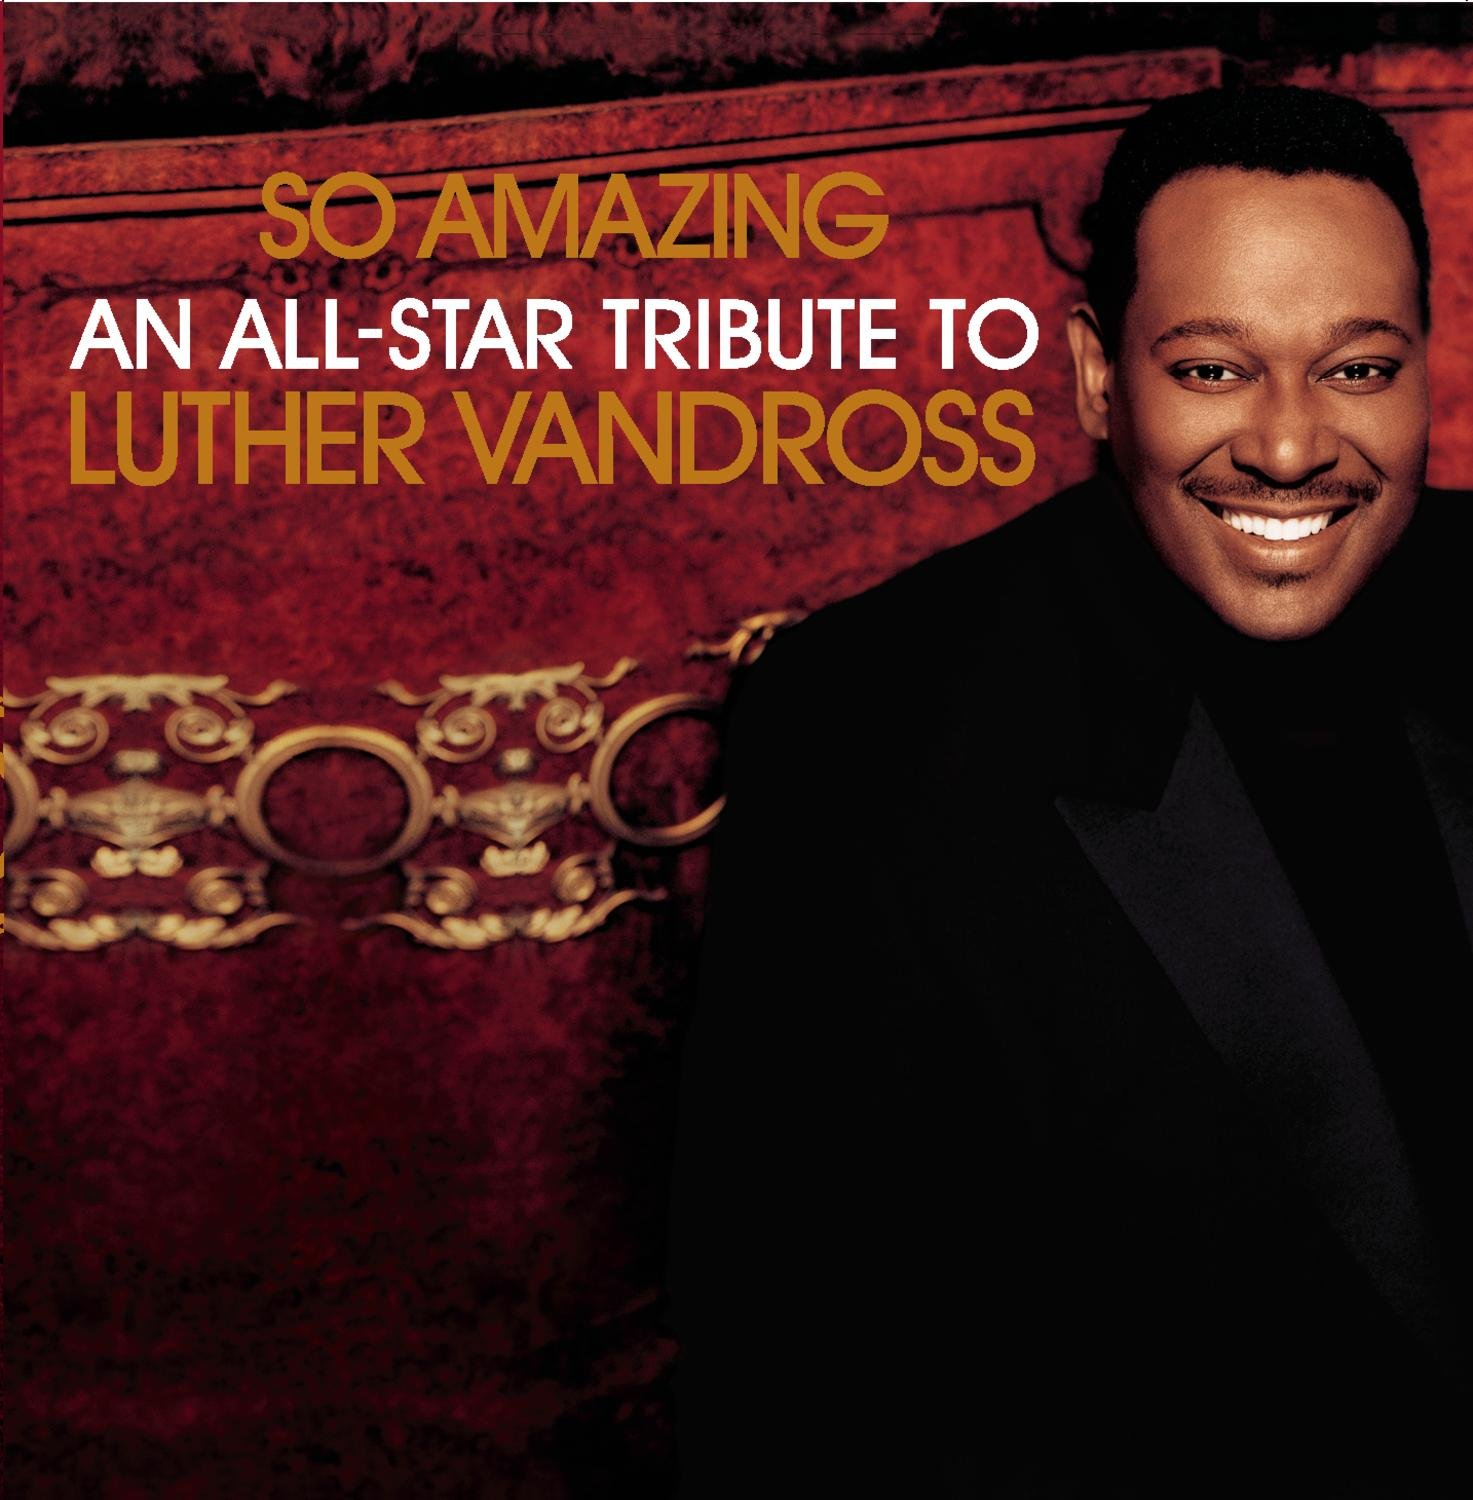 So Amazing...An All-Star Tribute to Luther Vandross